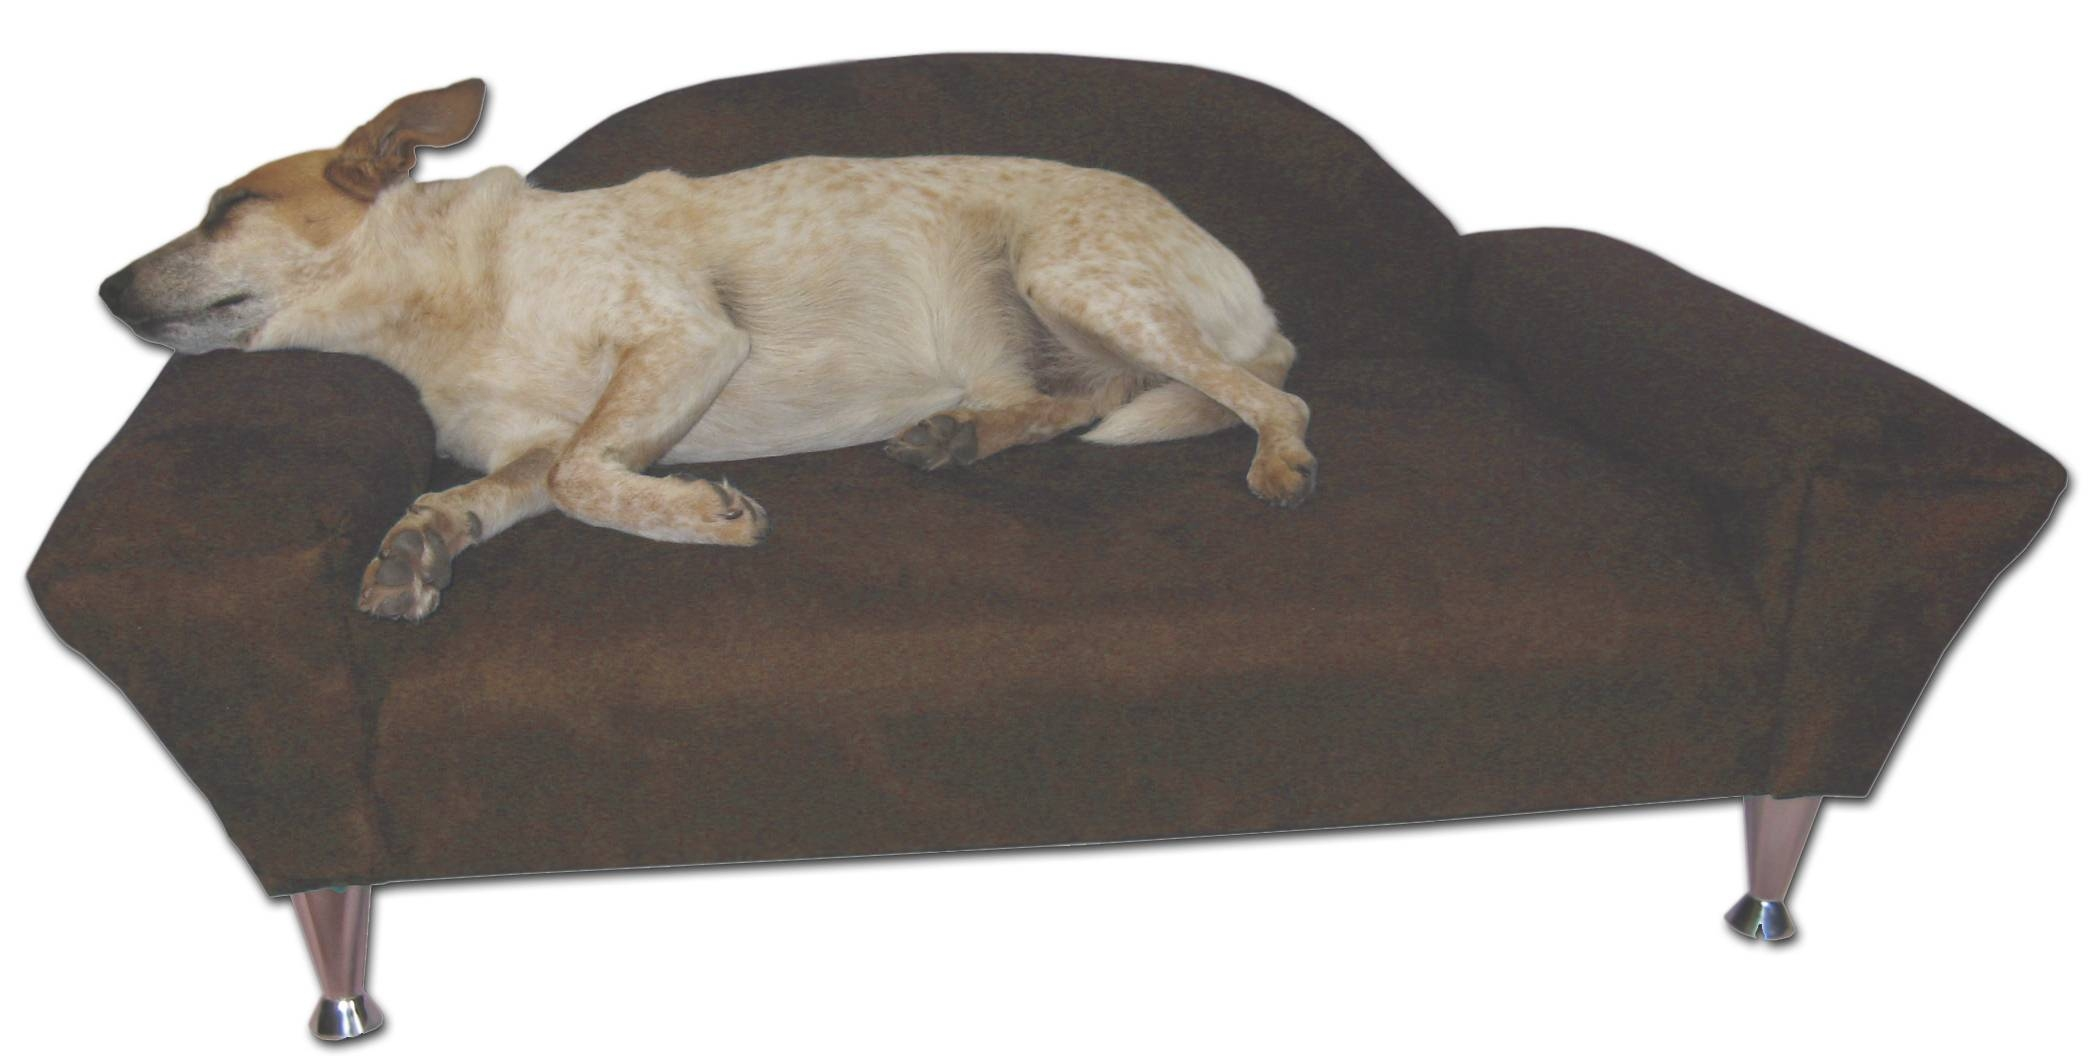 Dog Furniture - Pet Furniture - Dog Sofa - Dog Couch pertaining to Dog Sofas And Chairs (Image 4 of 15)